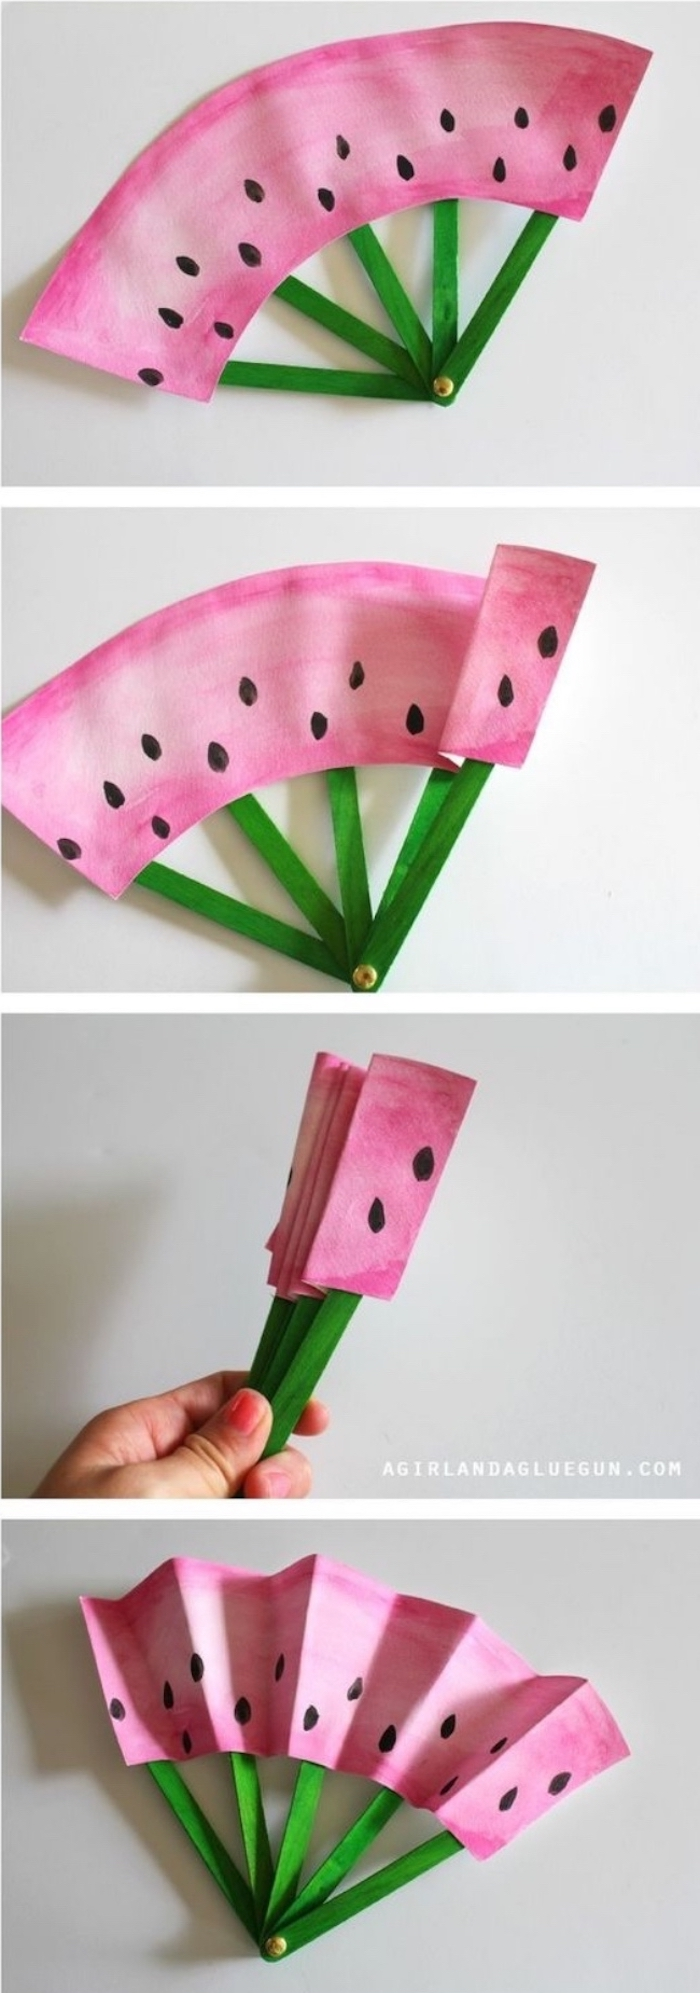 cool diy projects, paper fan, painted as a watermelon, wooden popsicle sticks